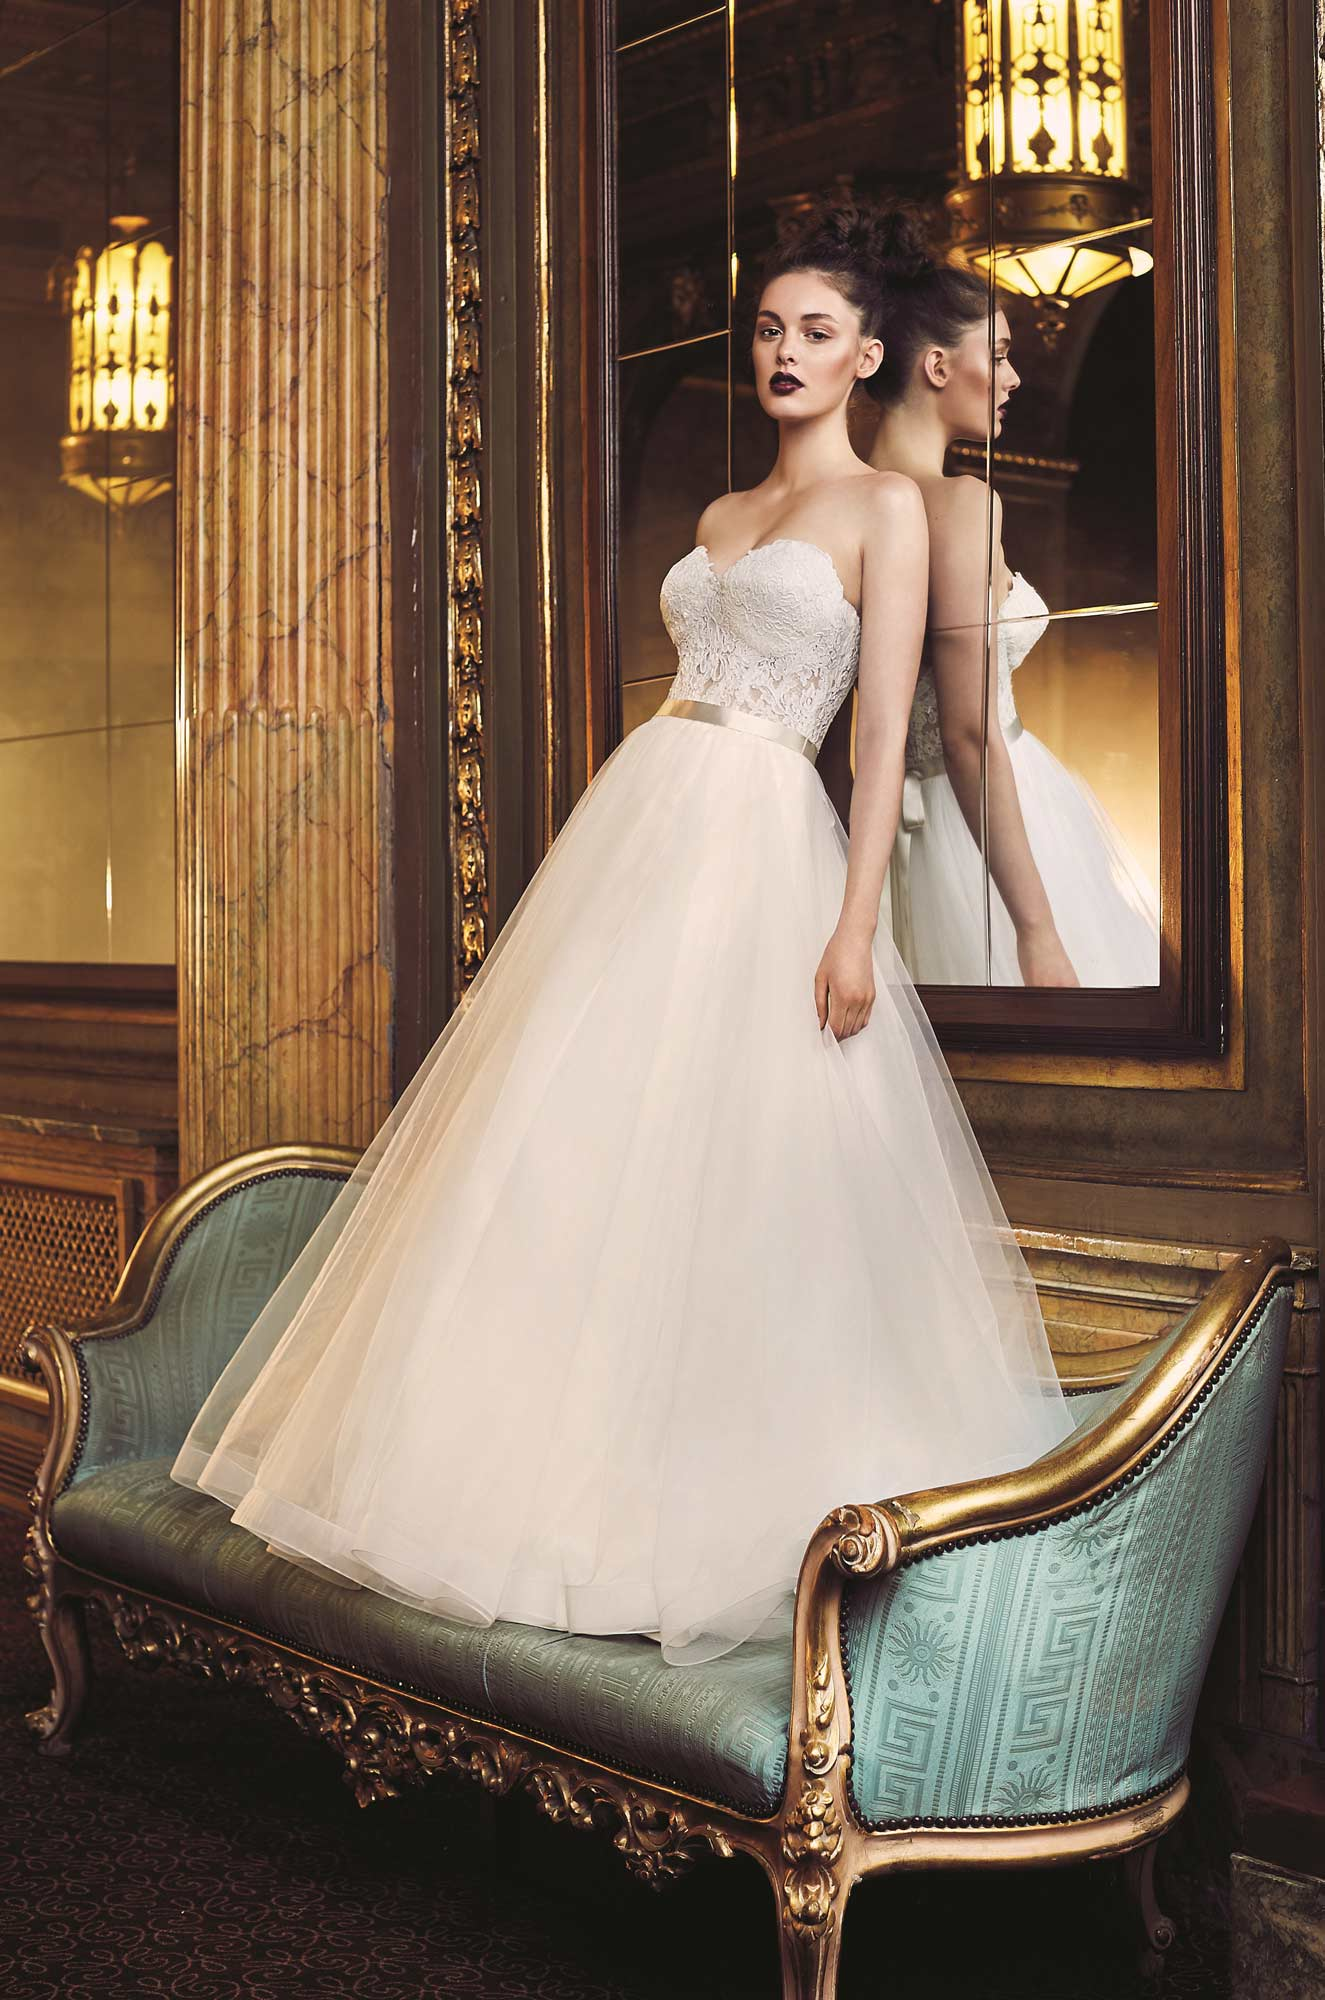 Tulle Ball Gown Wedding Dress - Style #4704 | Paloma Blanca